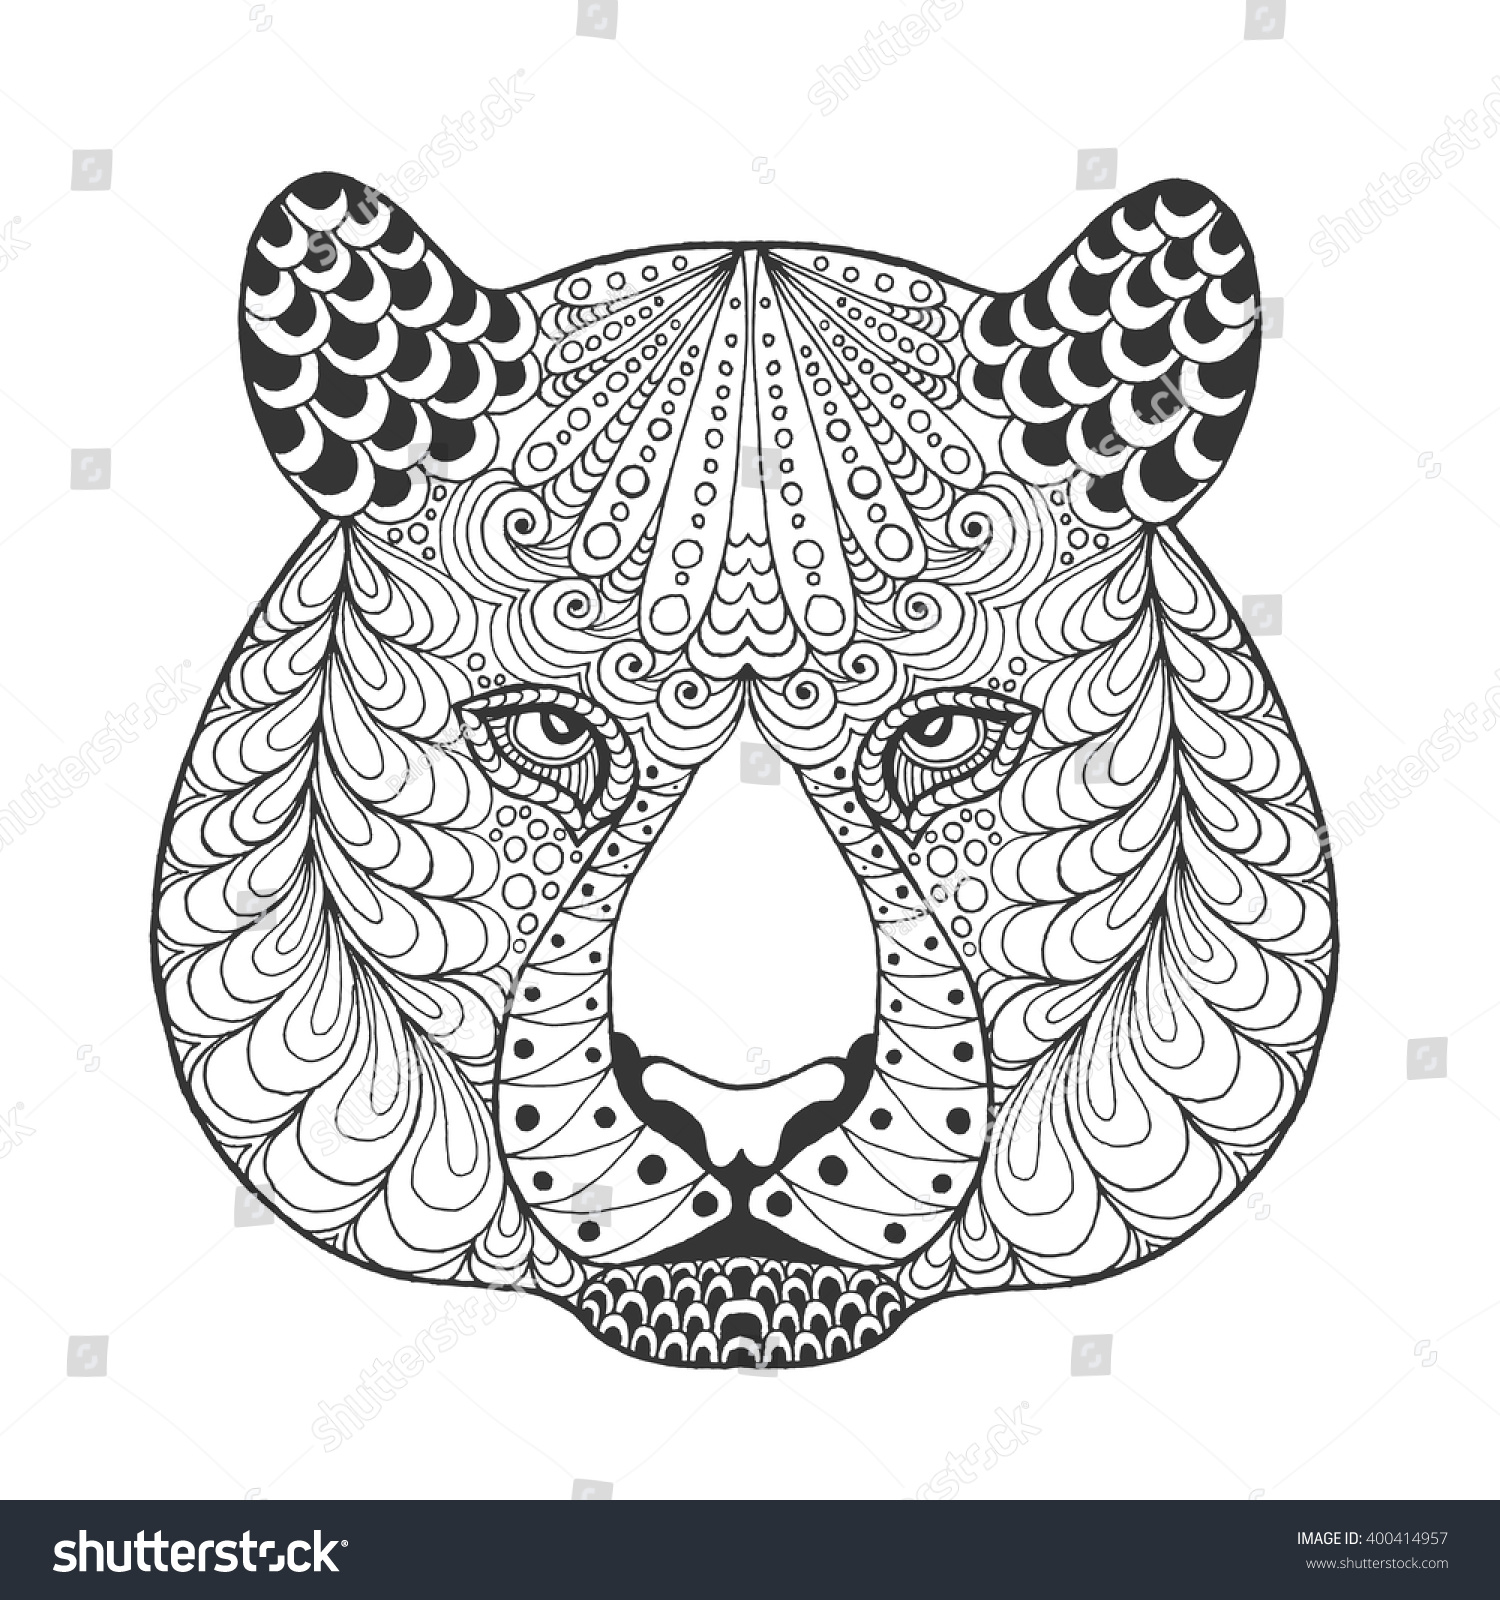 Tiger Head Adult Antistress Coloring Page Black White Hand Drawn Doodle Animal Ethnic